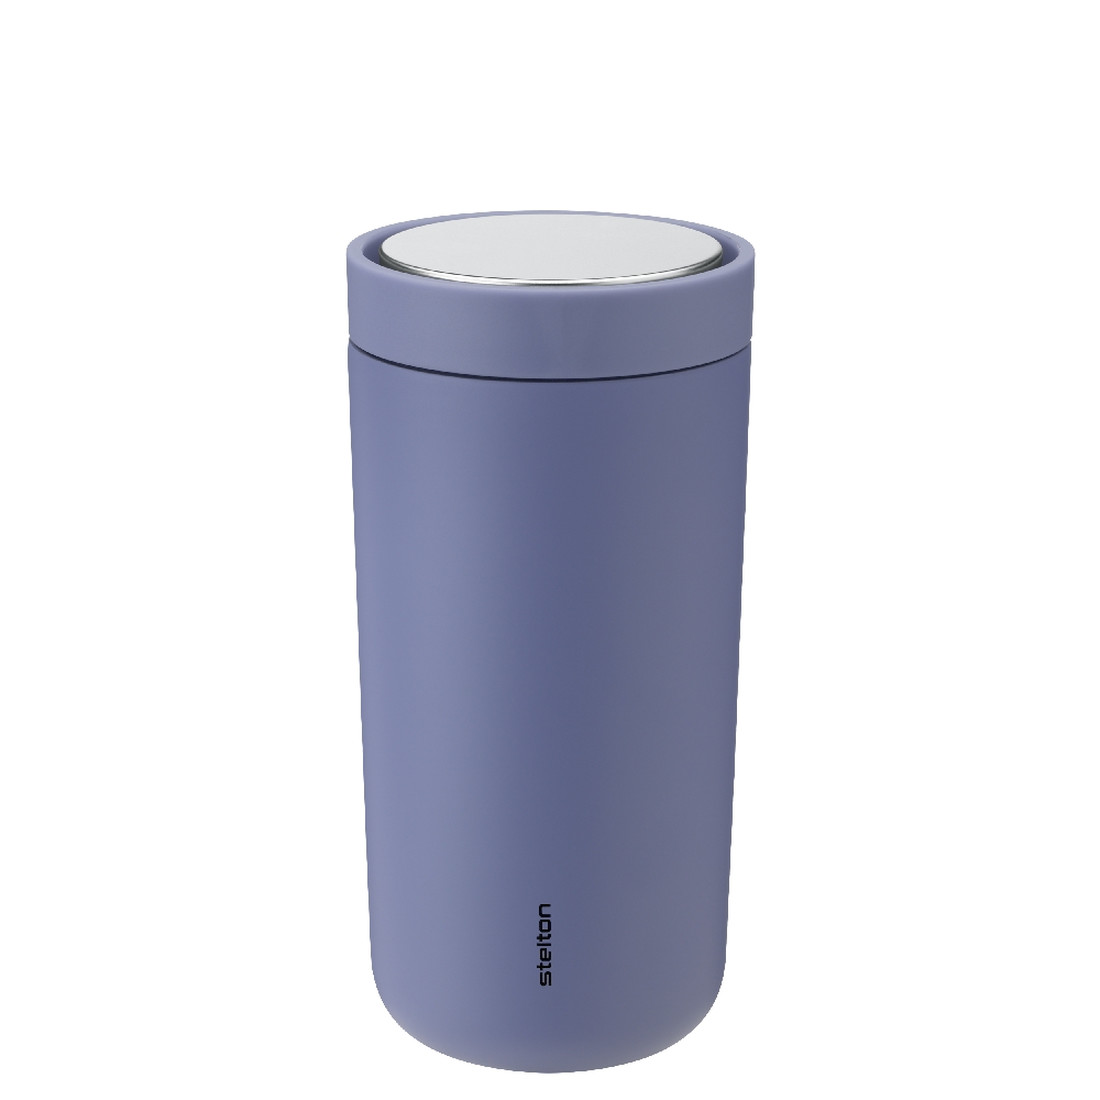 To Go Click Thermobecher Edelstahl 0,4l - soft lupin by stelton